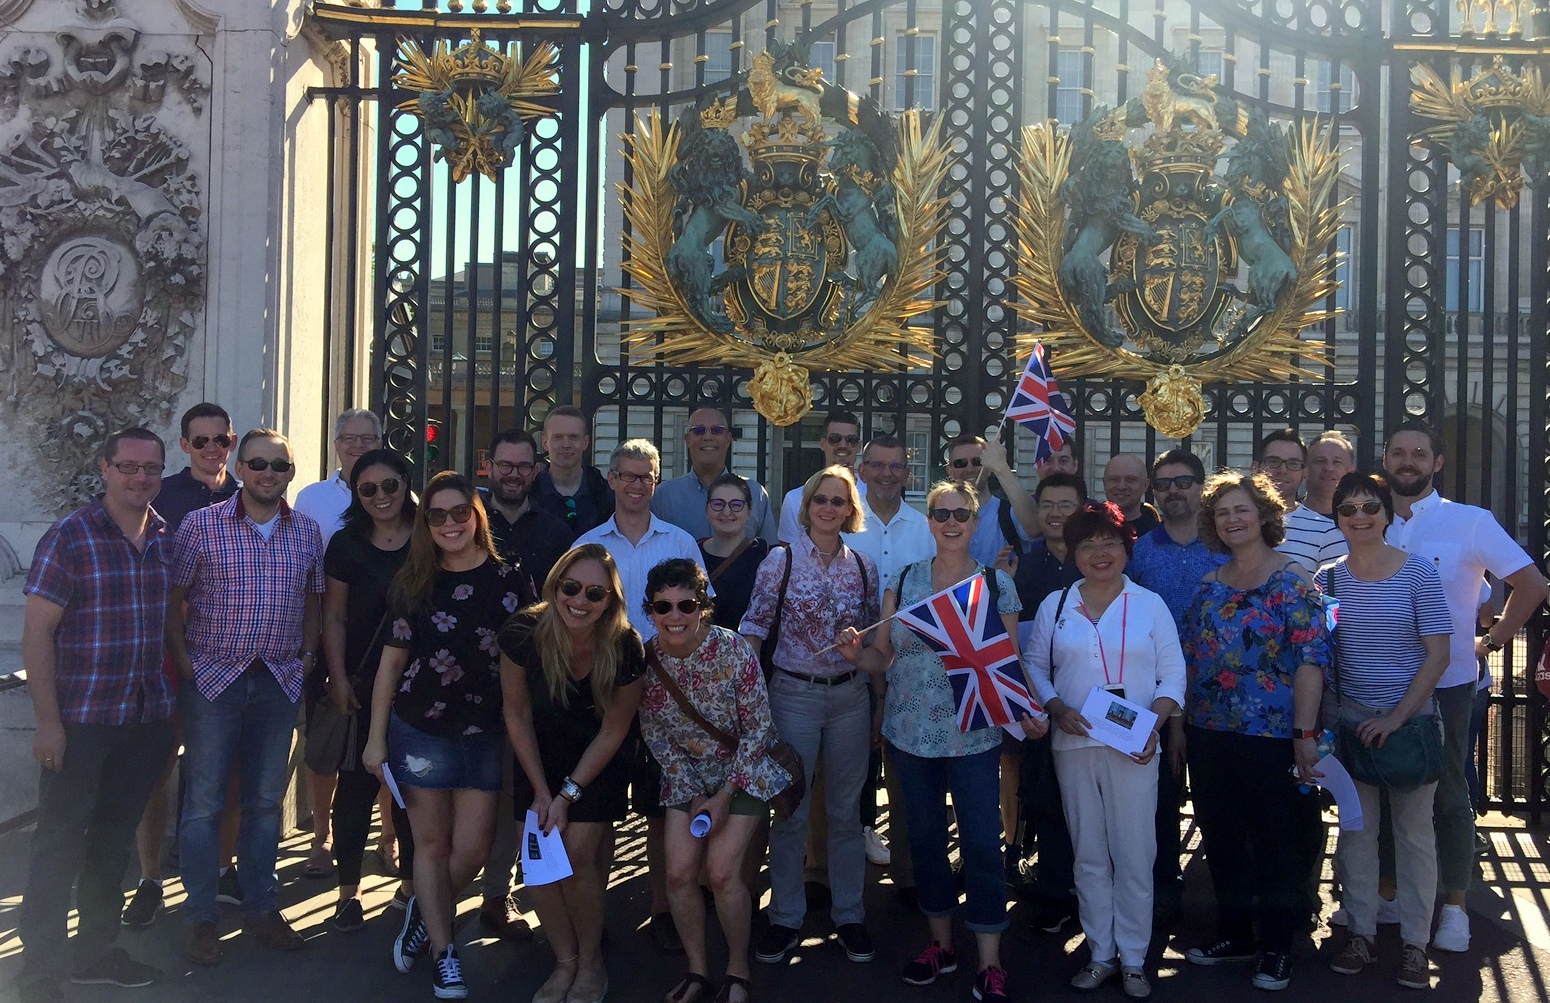 participants in front of the Buckingham palace gate in London